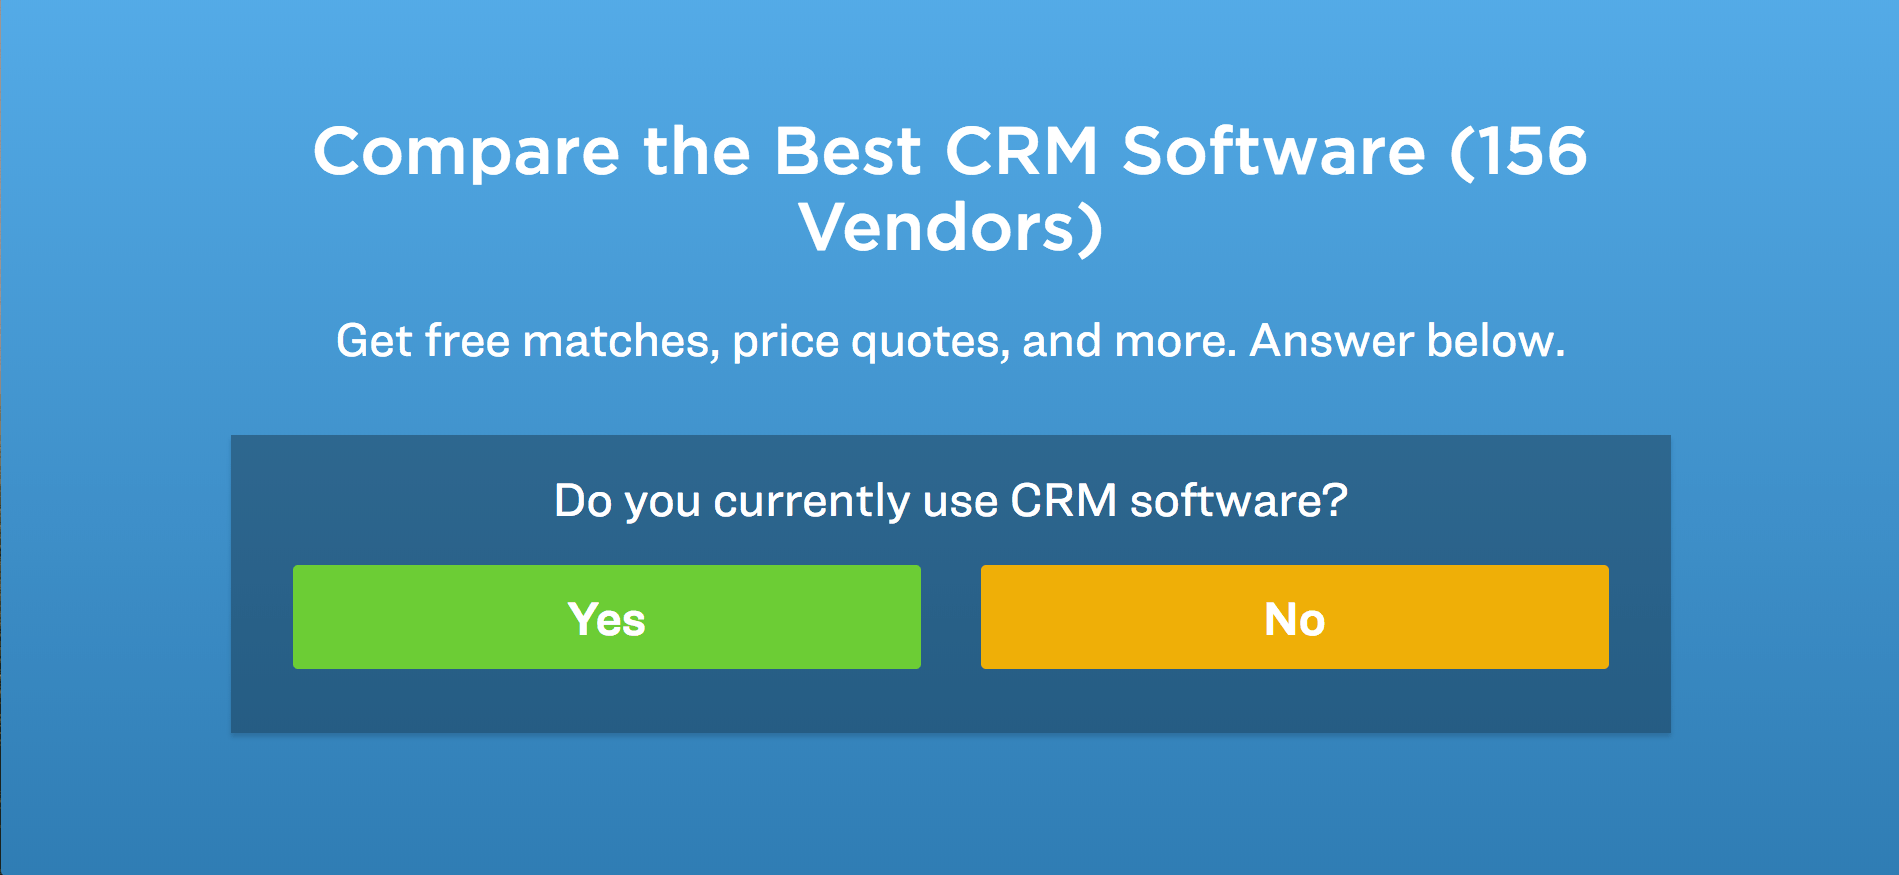 Compare the best CRM software.